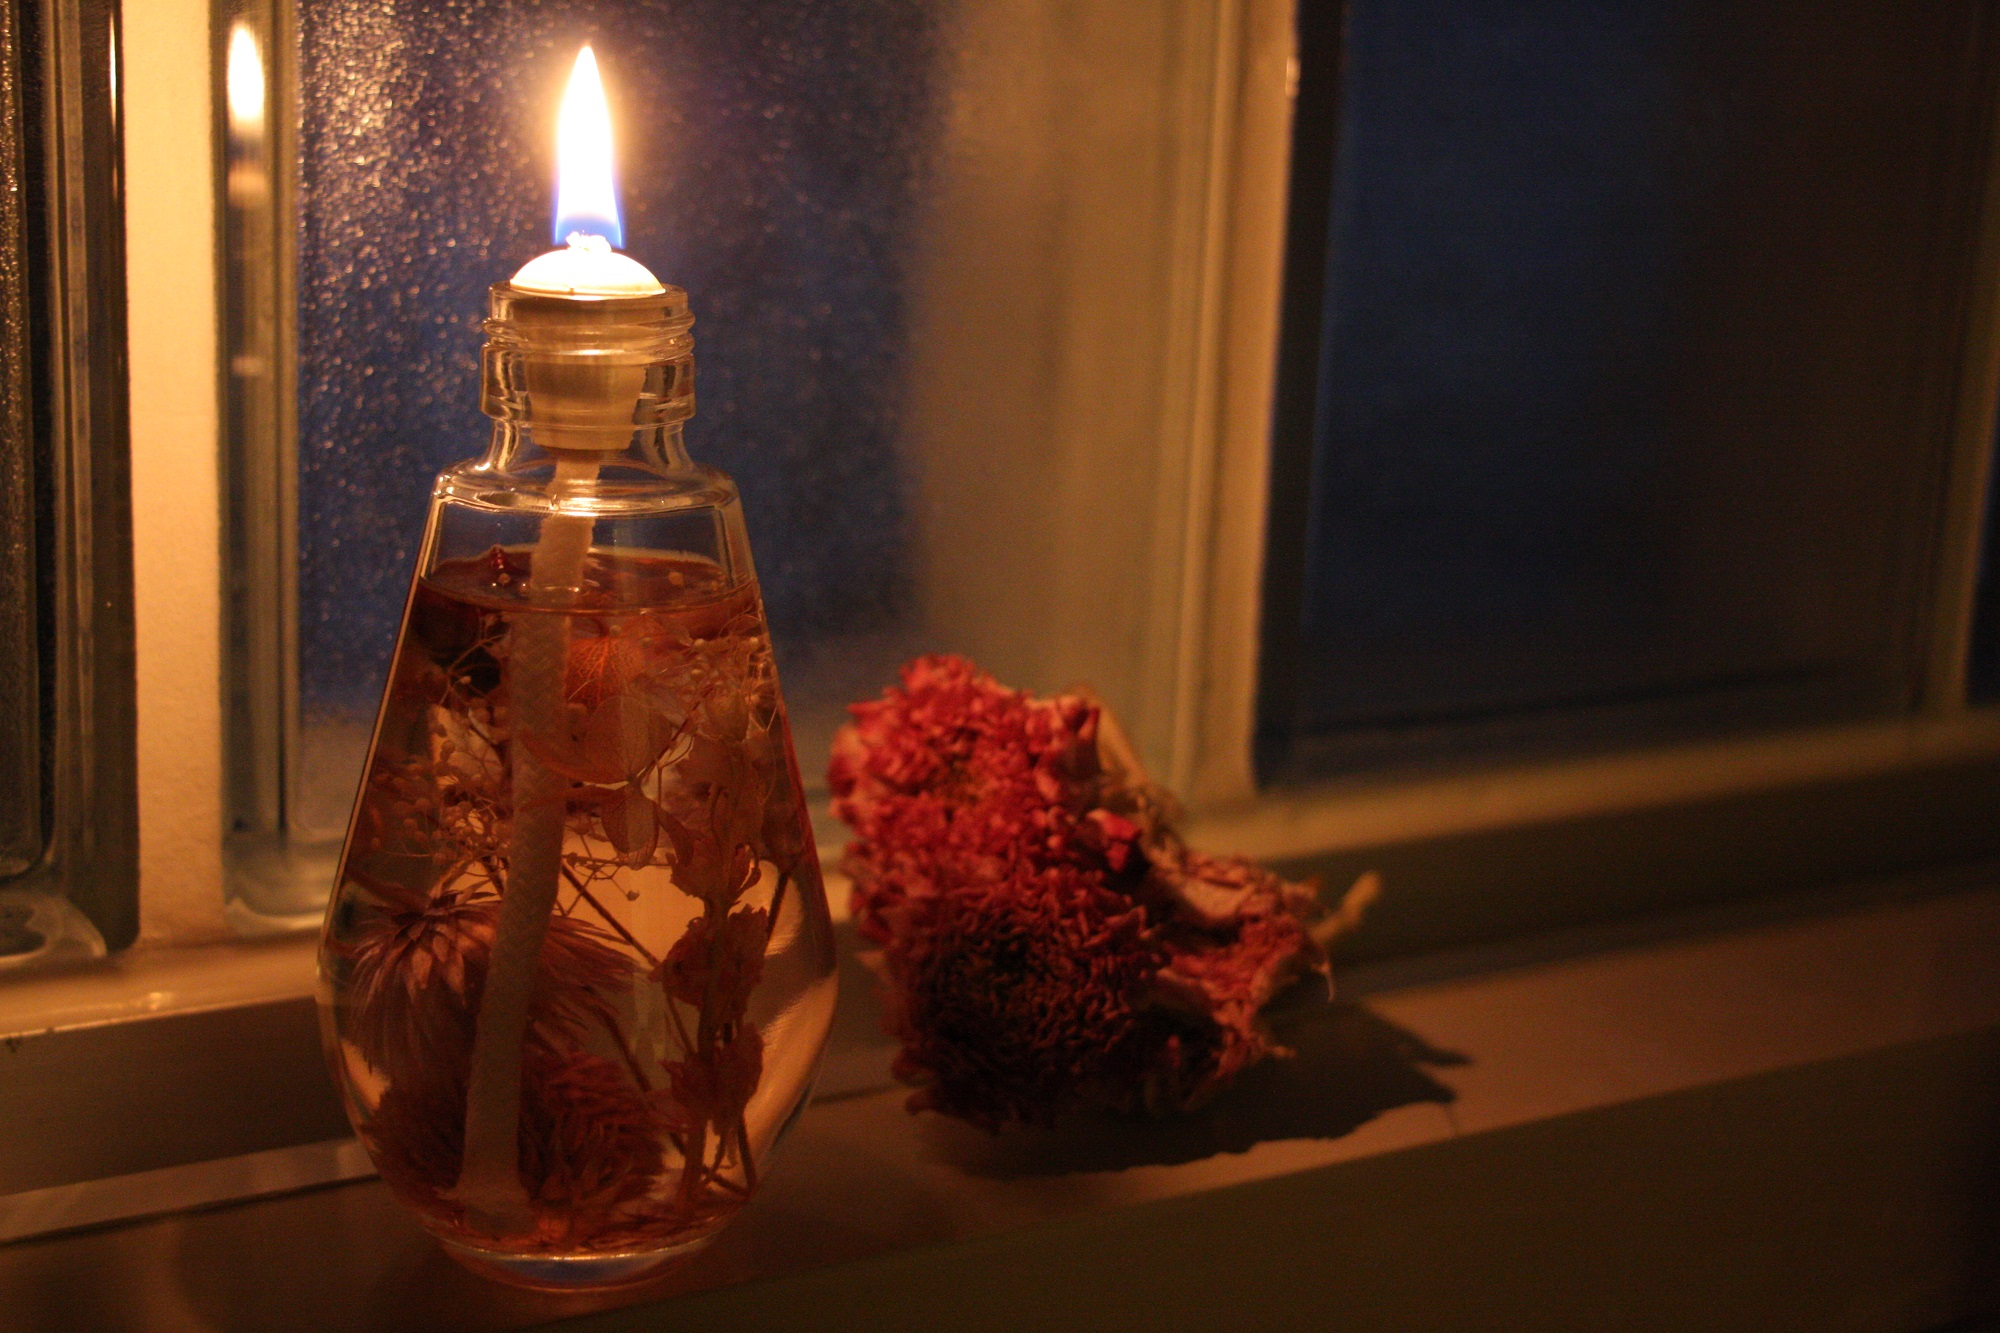 CANDLEEVENT